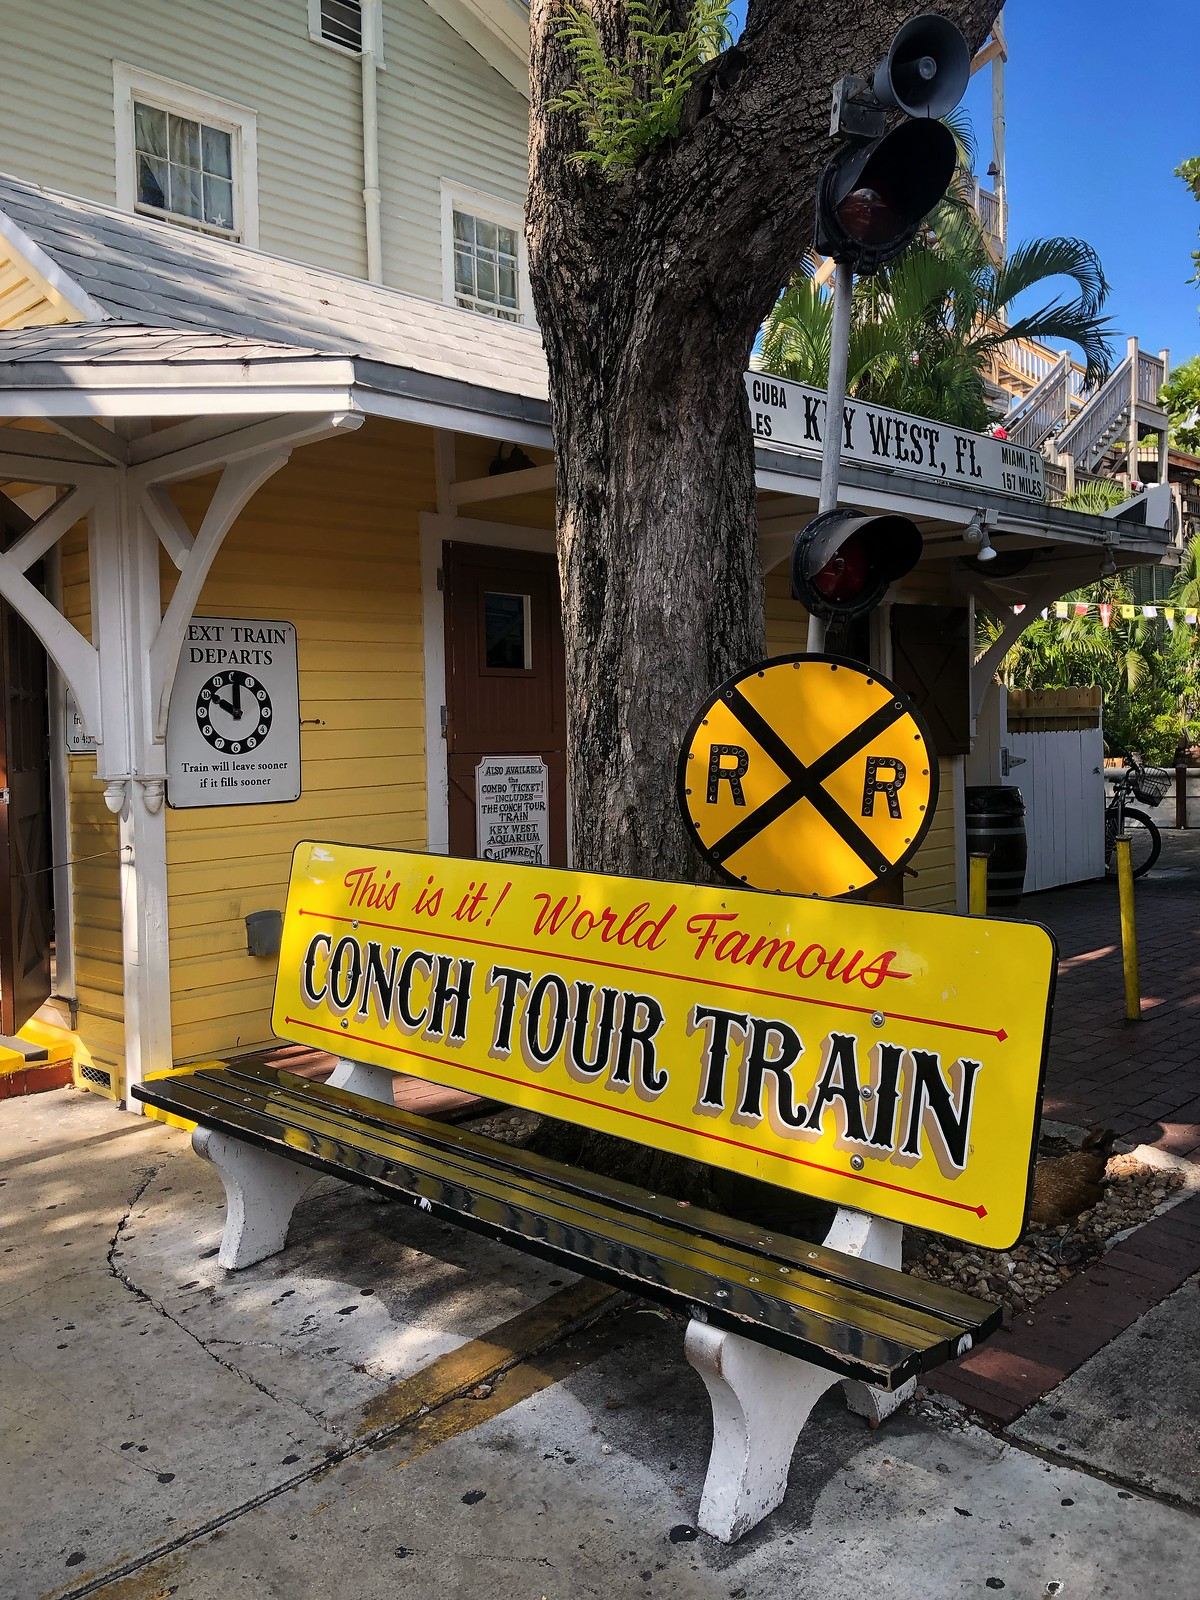 conch-tour-train-ultimate-road-trip-5-days-florida-keys-itinerary-what-to-do-key-west-key-largo-islamorada-marathon-miami-vacation-guide